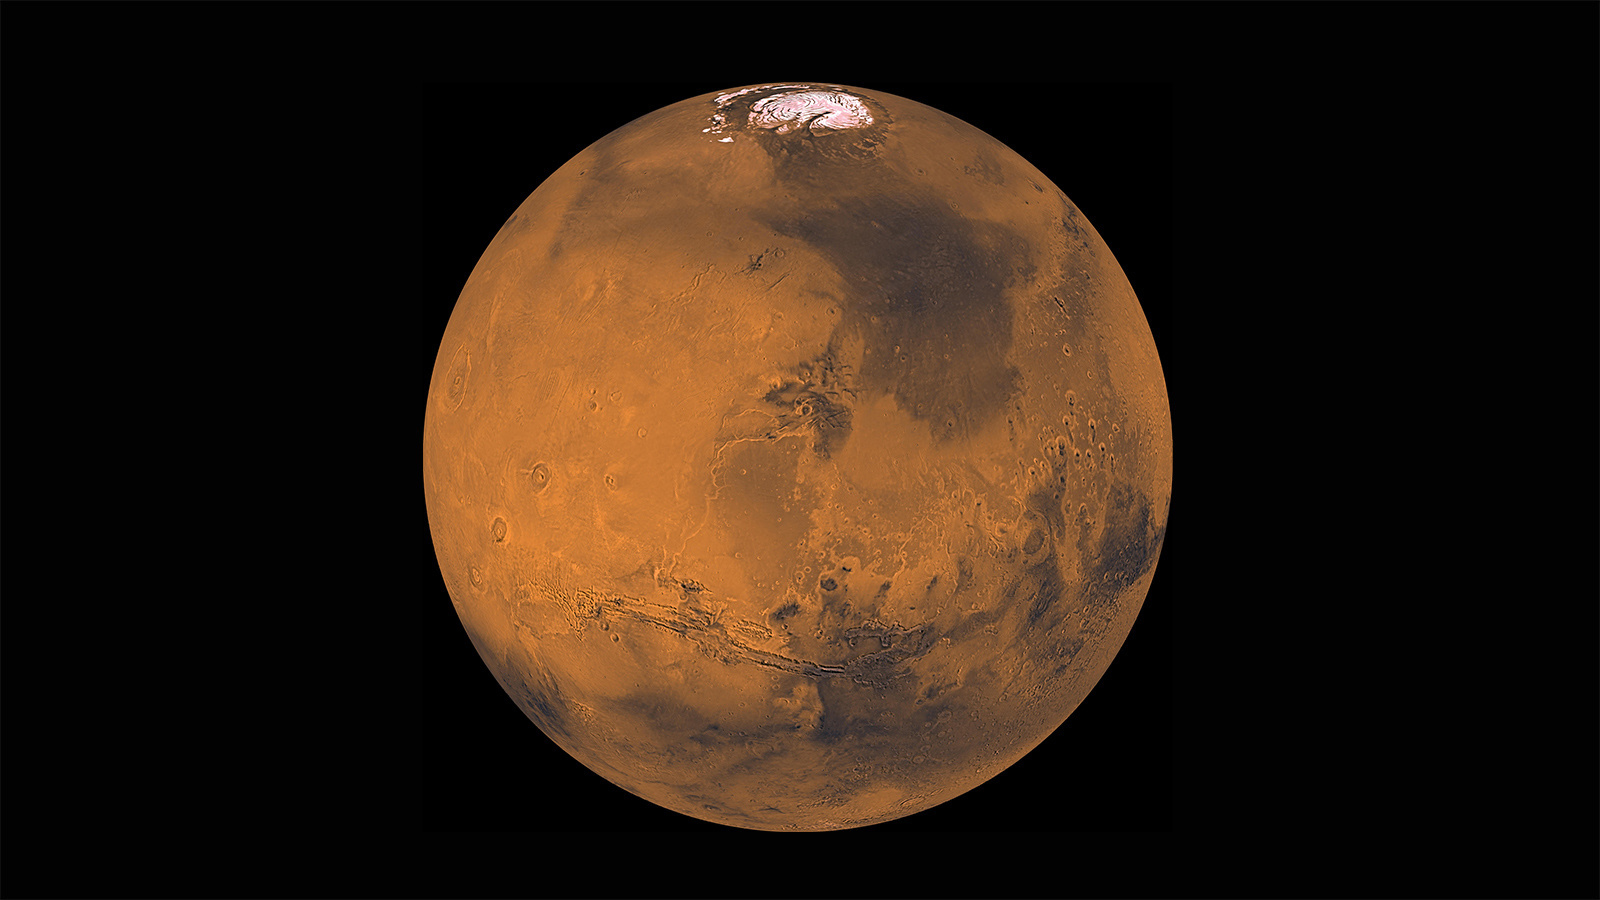 How to detect life on Mars